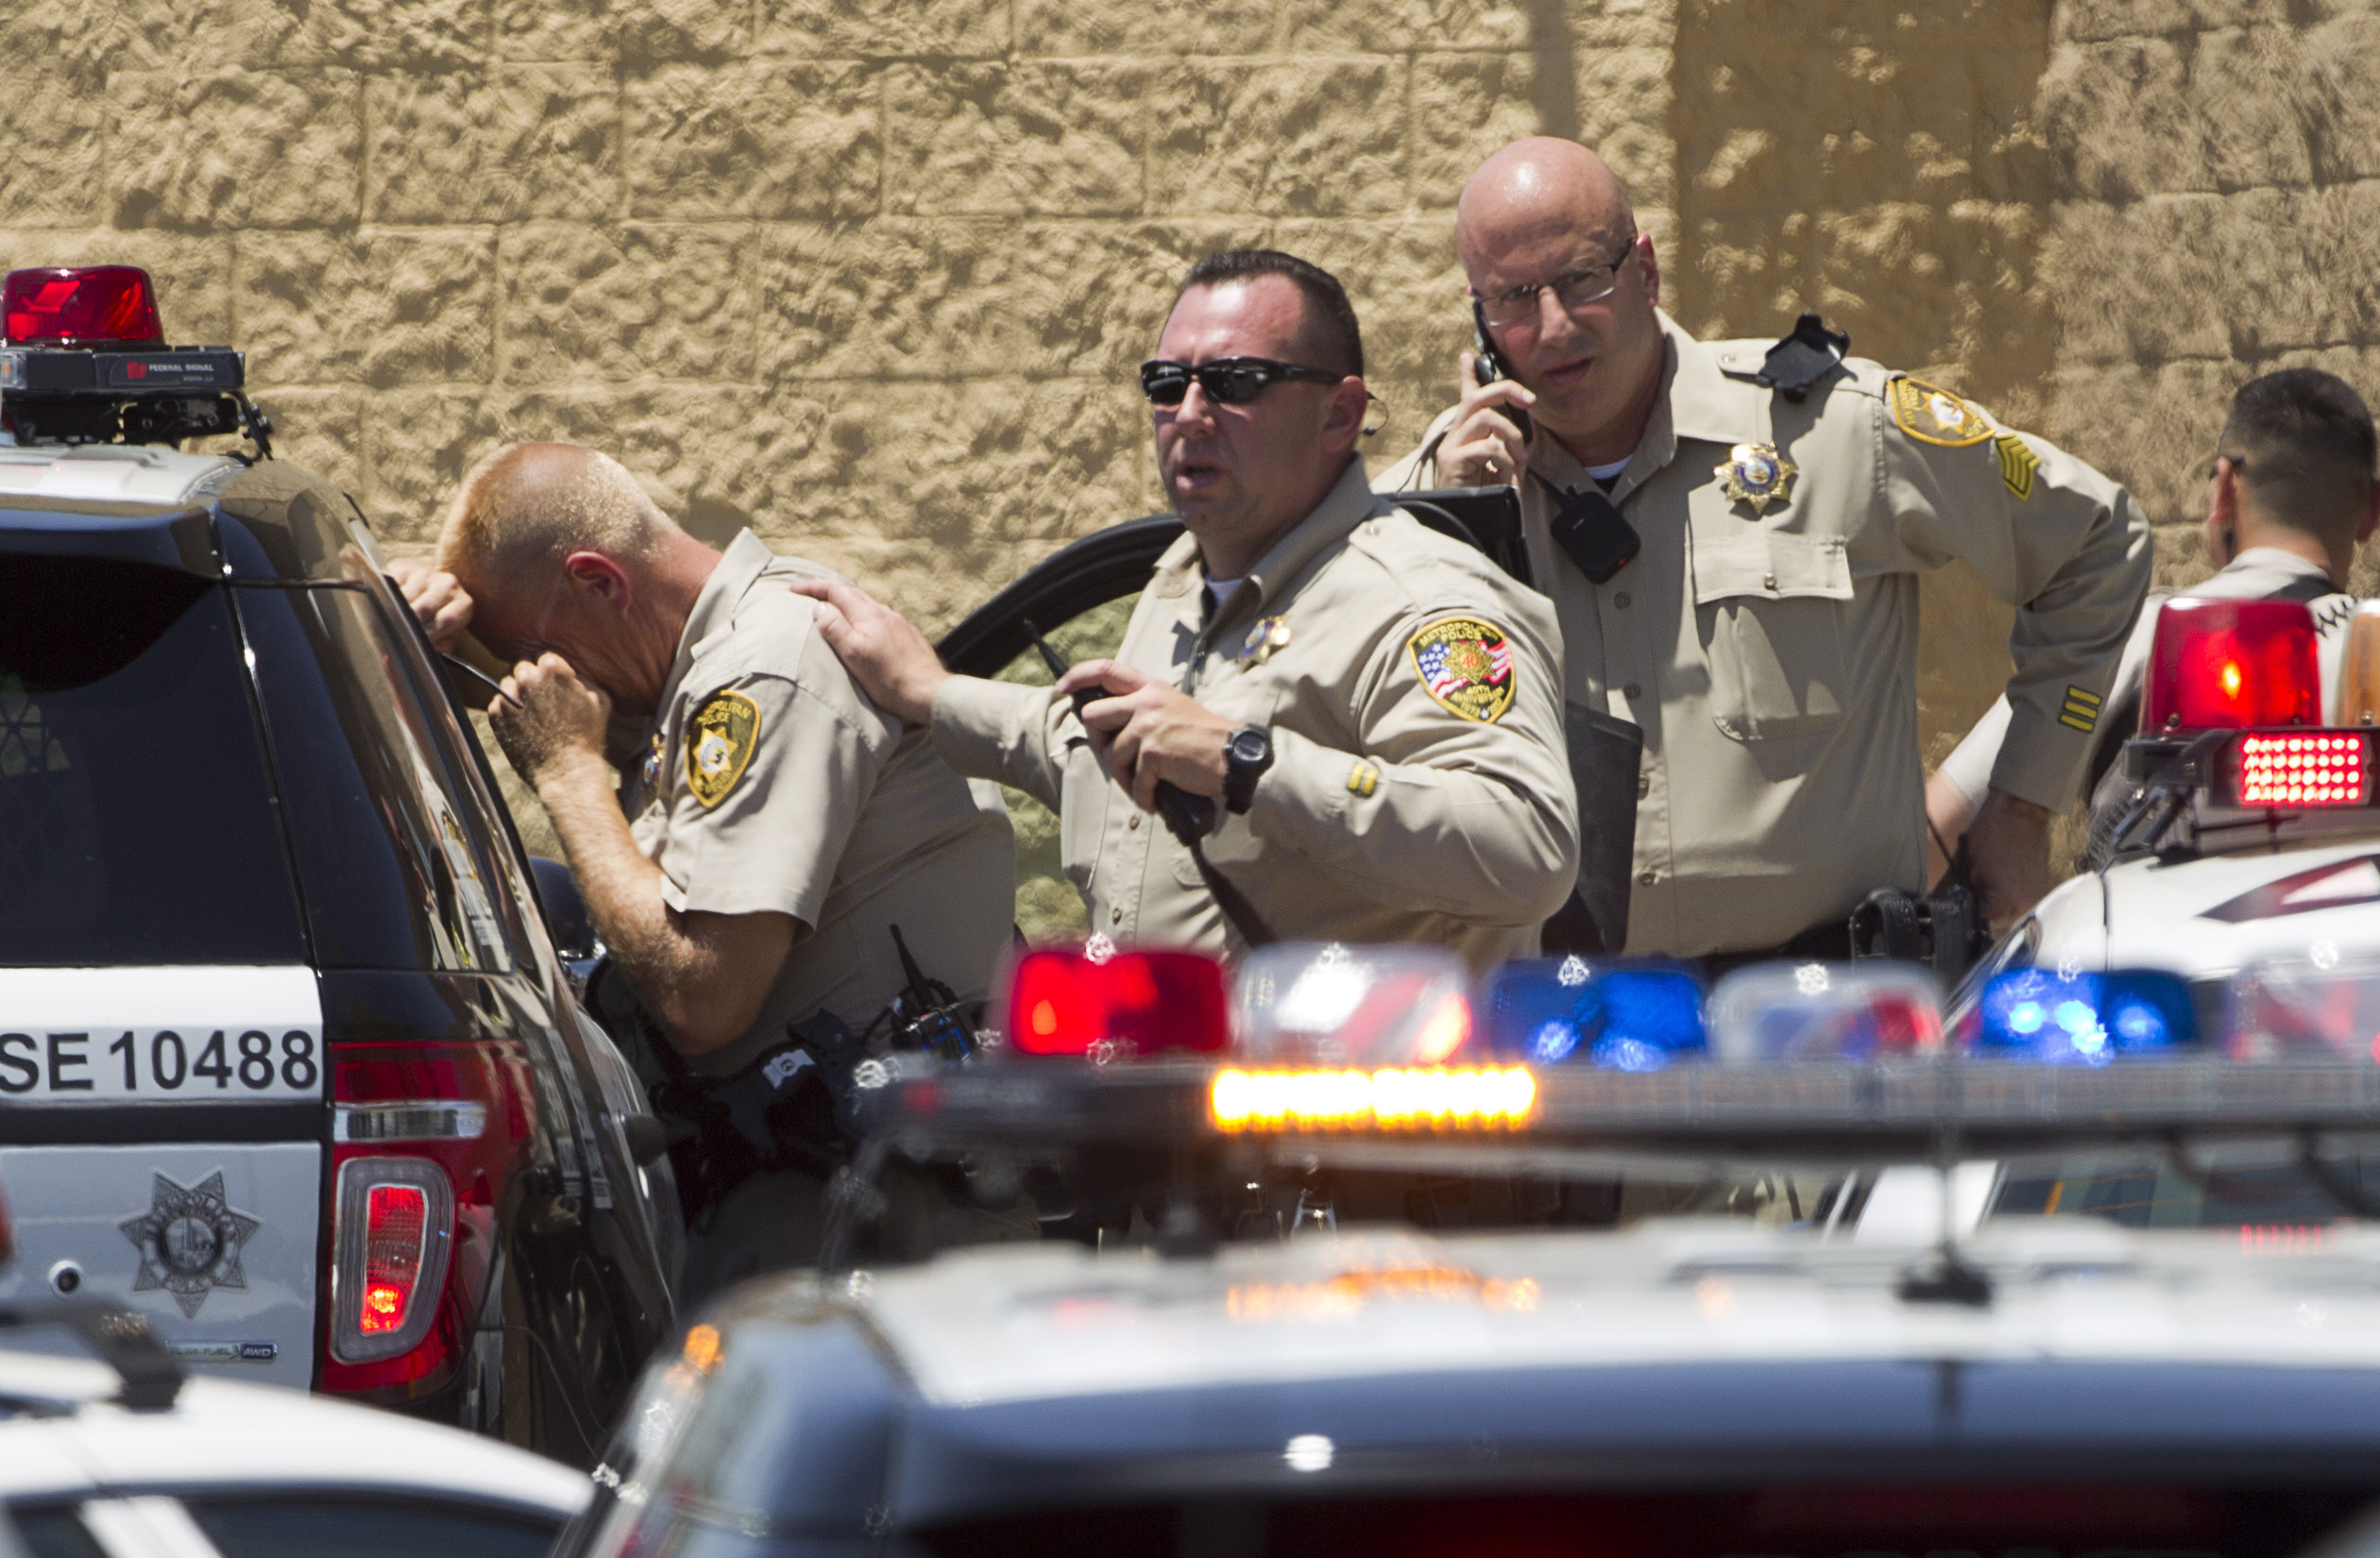 Metro Police officers are shown outside a Wal-Mart after a shooting in Las Vegas June 8, 2014.